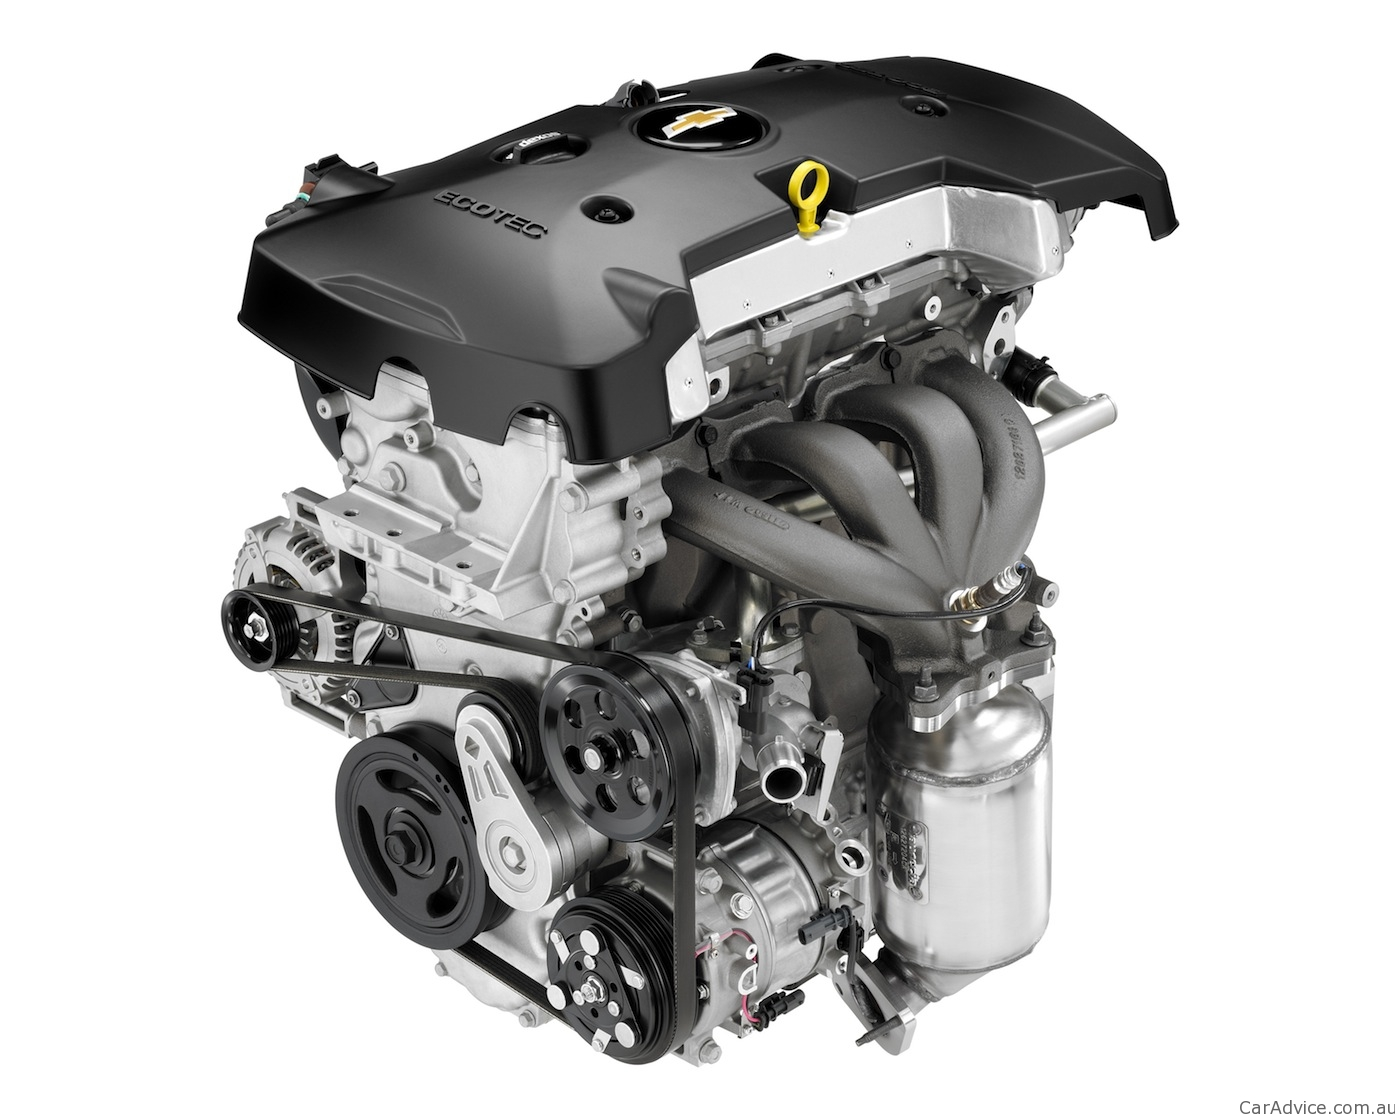 2013 Chevrolet Malibu Engine Details Revealed